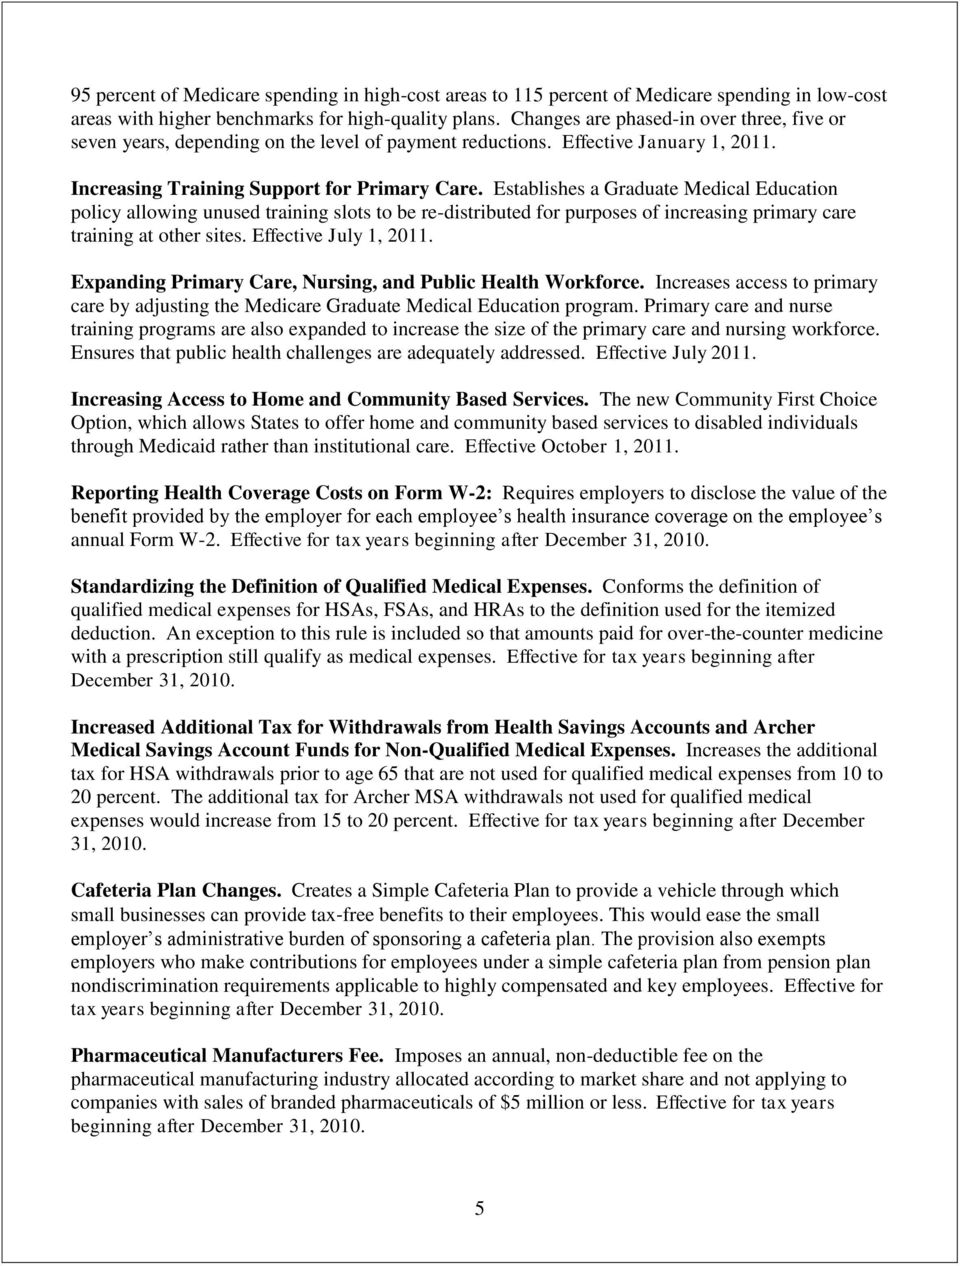 Establishes a Graduate Medical Education policy allowing unused training slots to be re-distributed for purposes of increasing primary care training at other sites. Effective July 1, 2011.